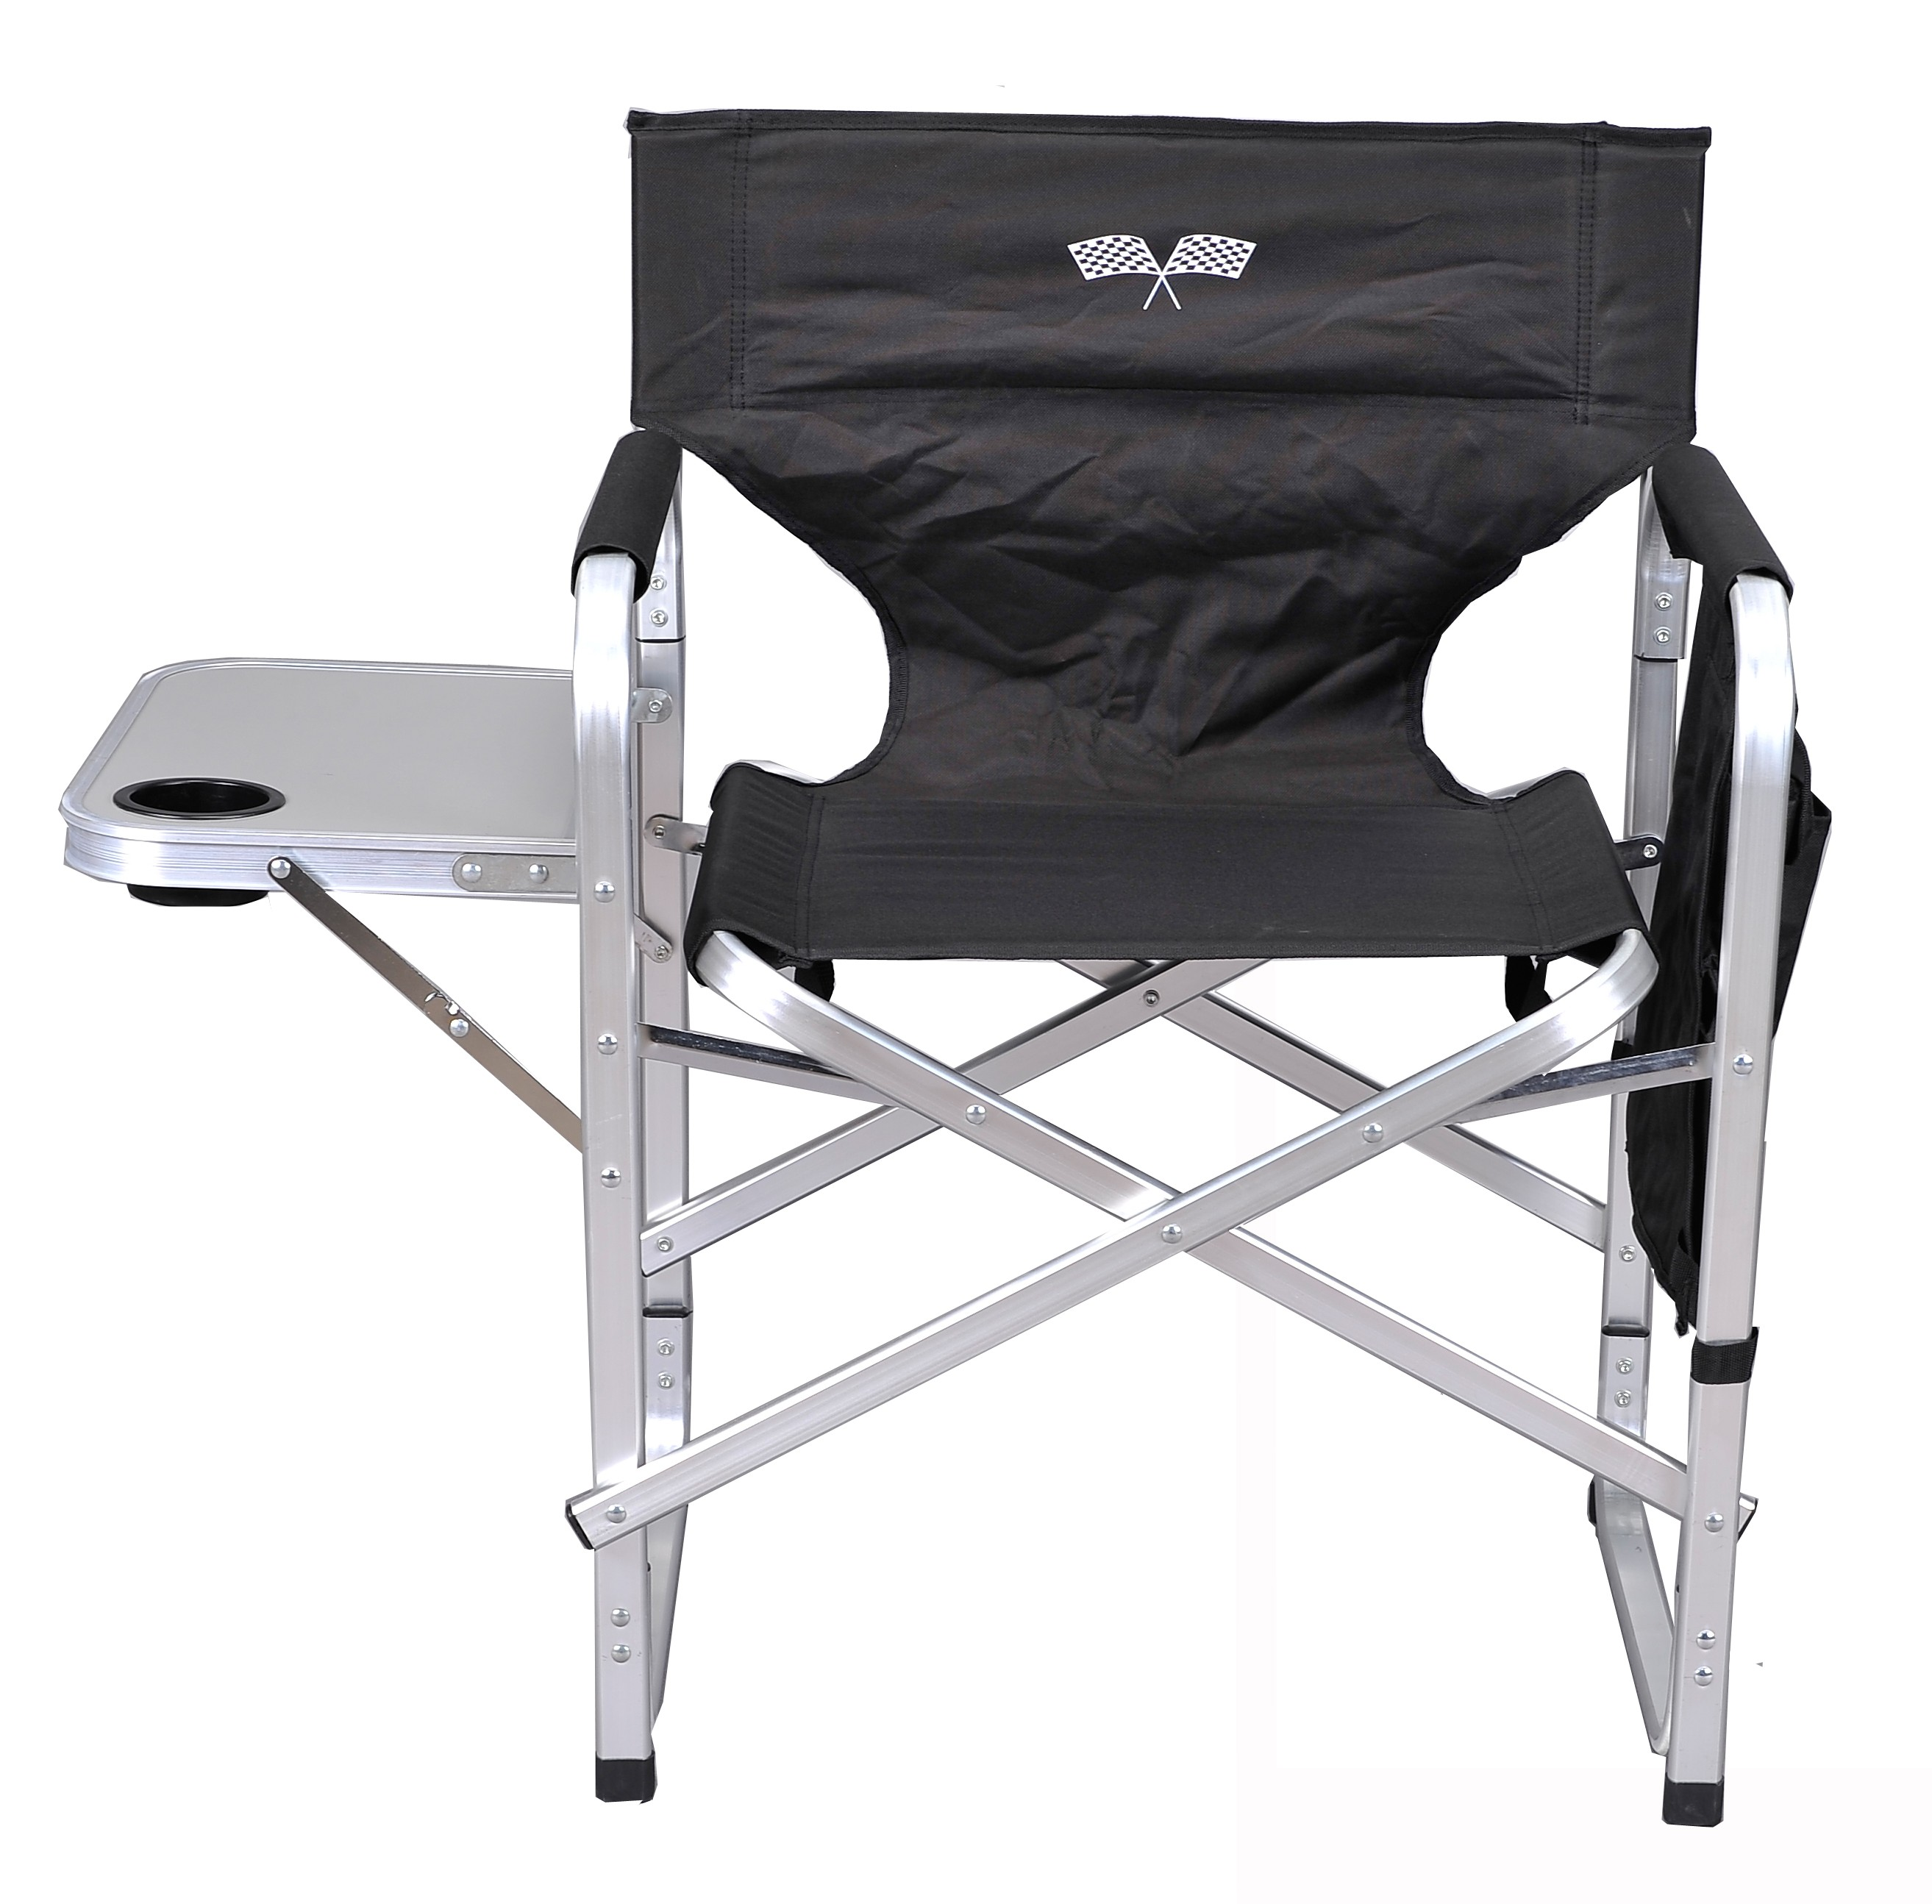 Stylish Camping Outdoor Folding Director's Chair w/ Full Back - Black/Flag